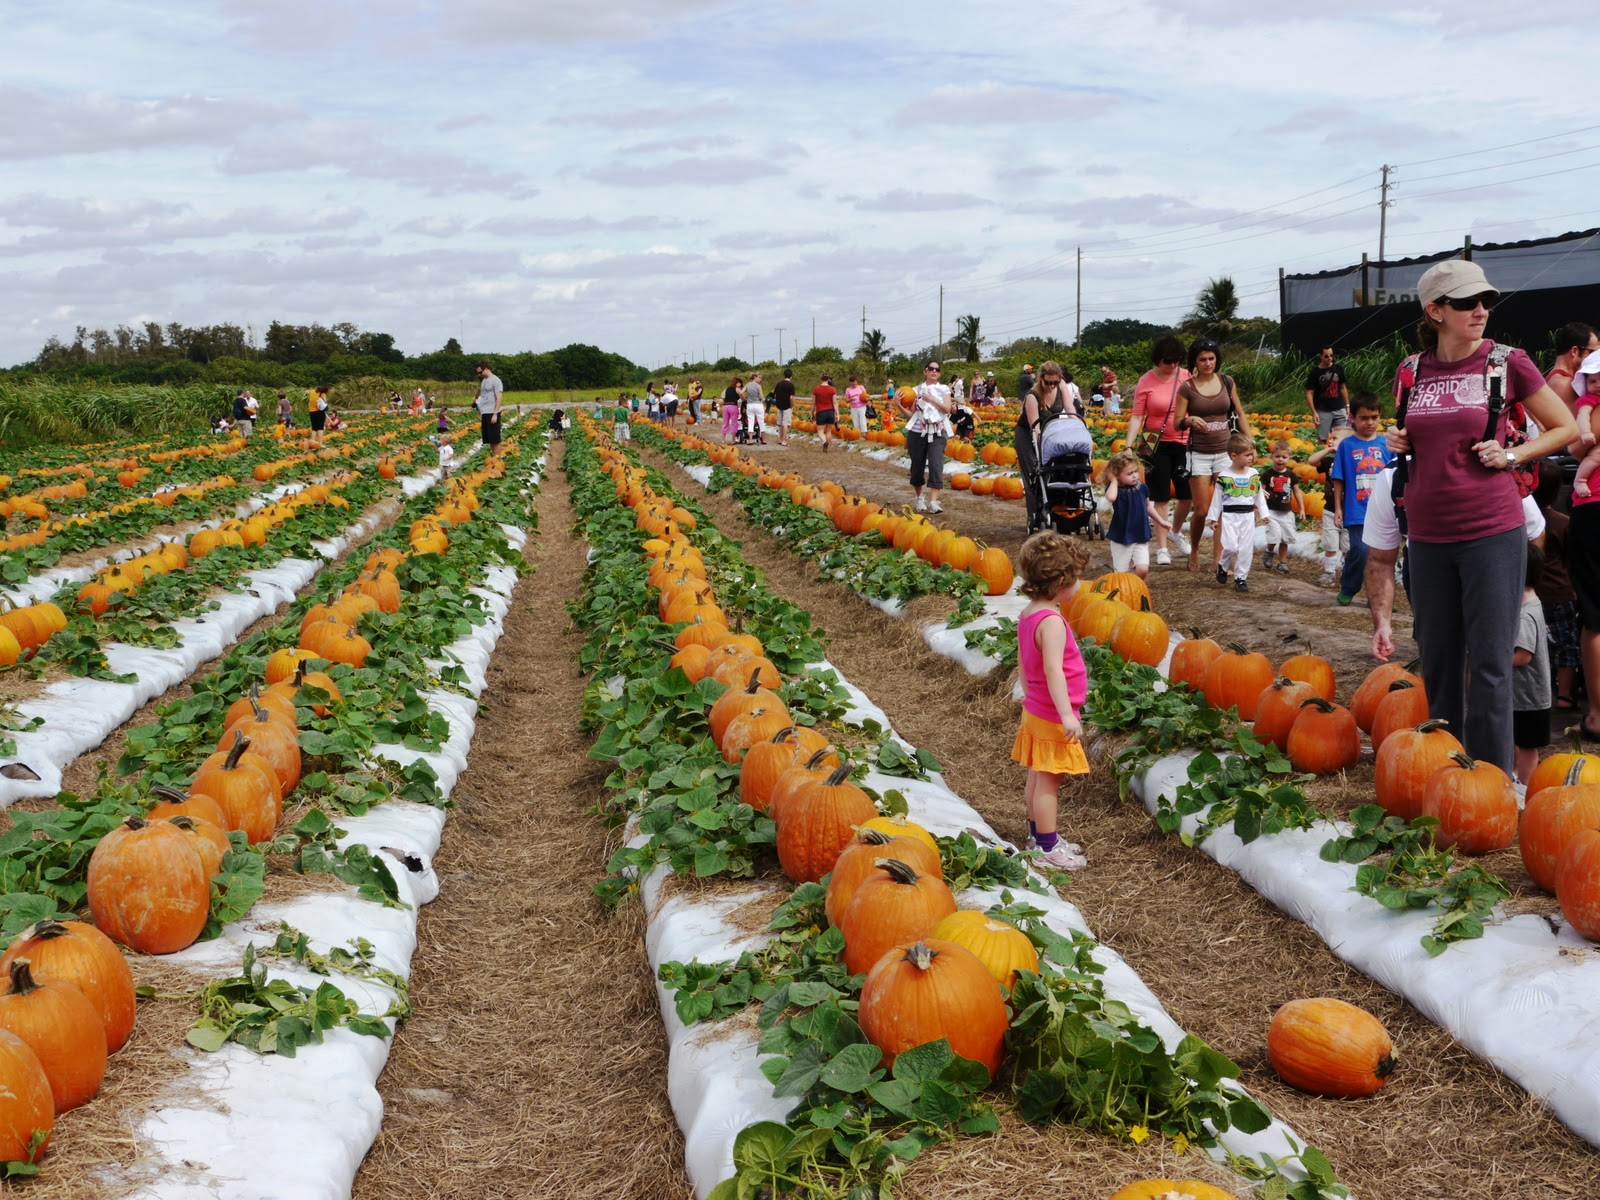 enjoy the delightful atmosphere of the Pumpkin Patch Festival